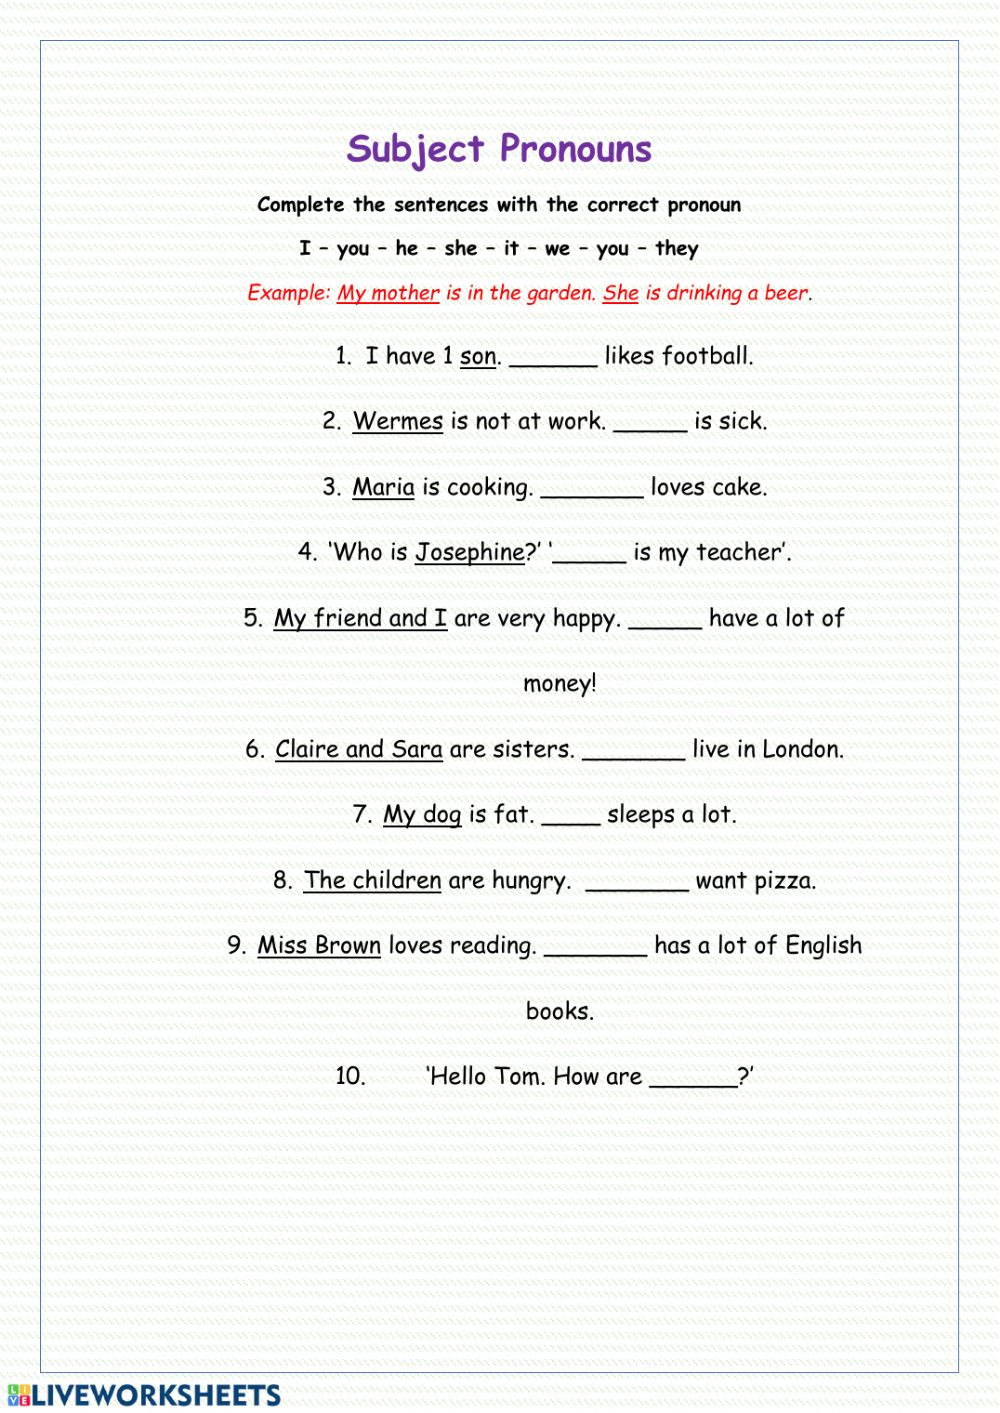 Second Grade Pronouns Worksheet Subject Pronouns Online Worksheet and Pdf